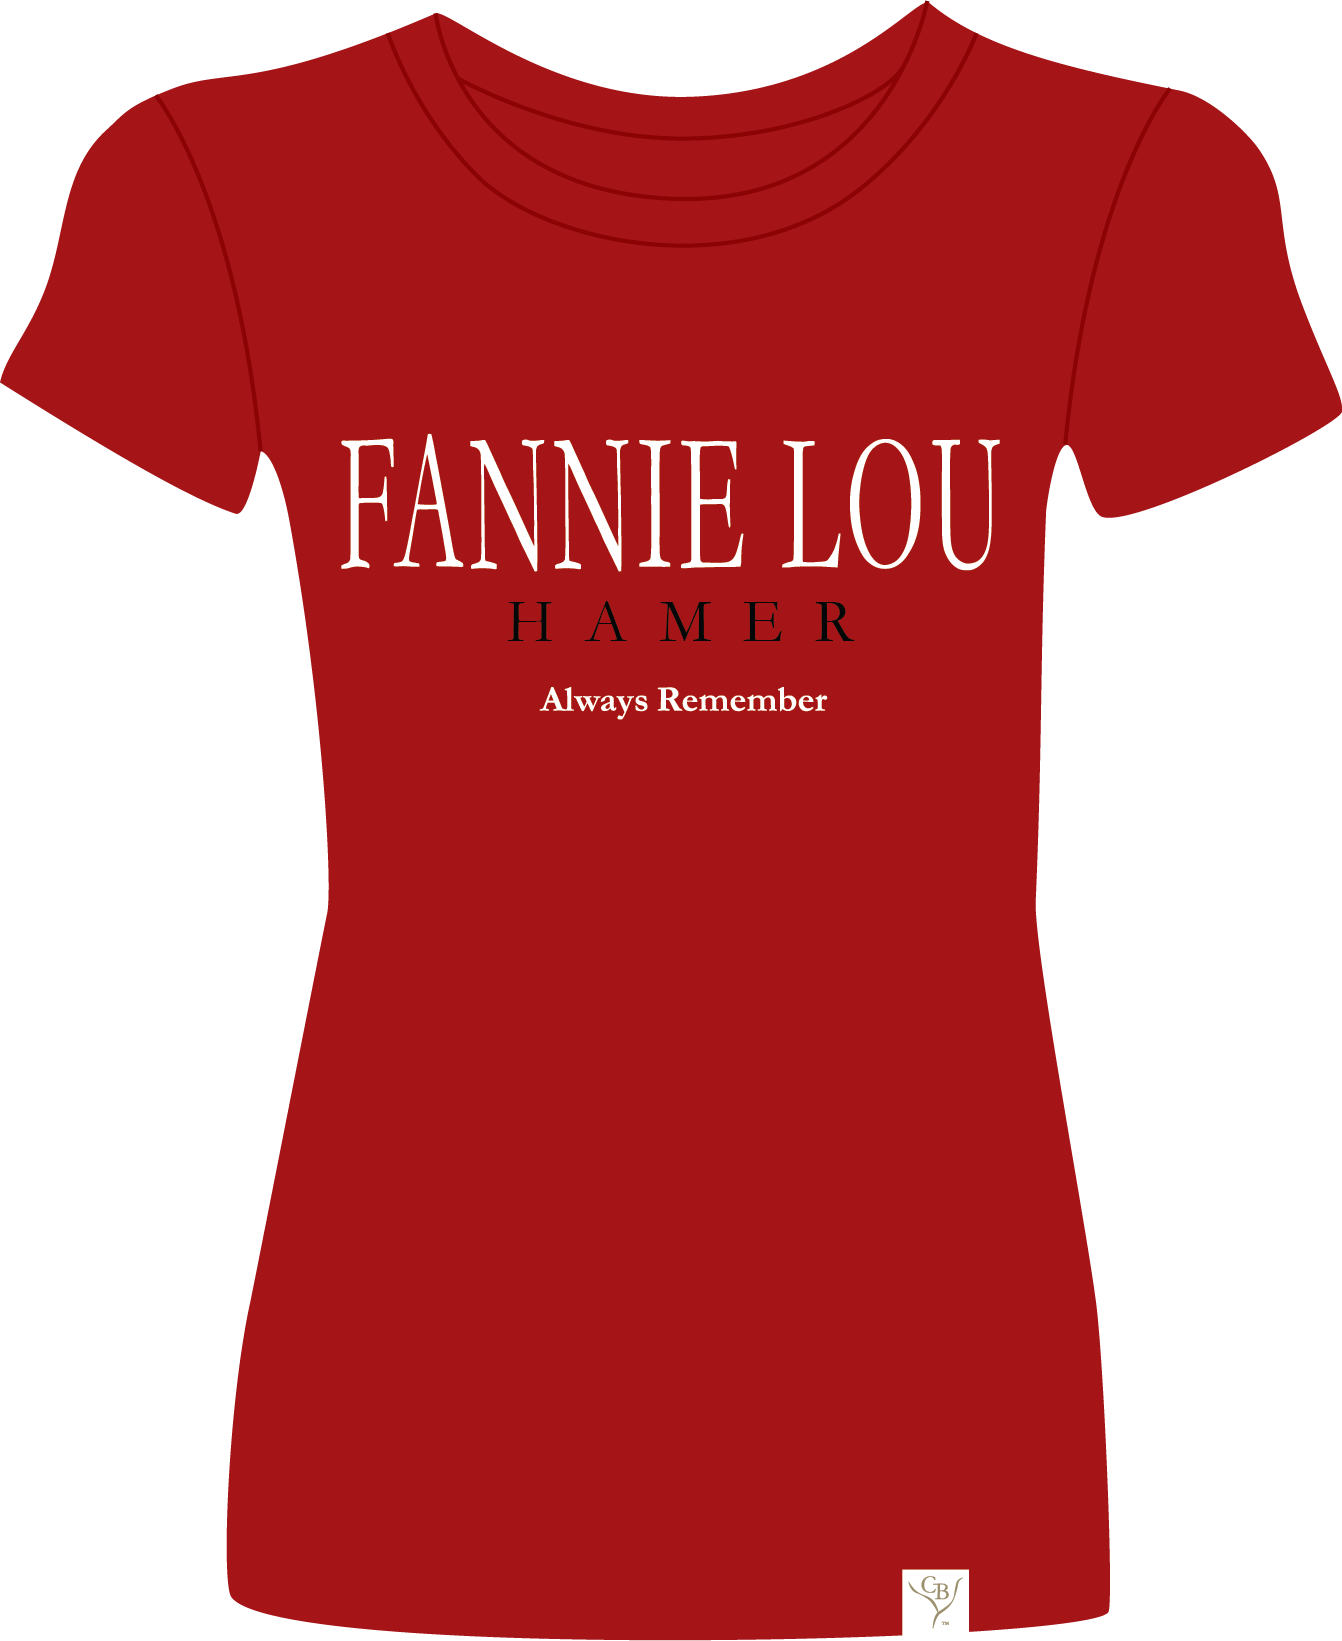 The Fannie Lou 9